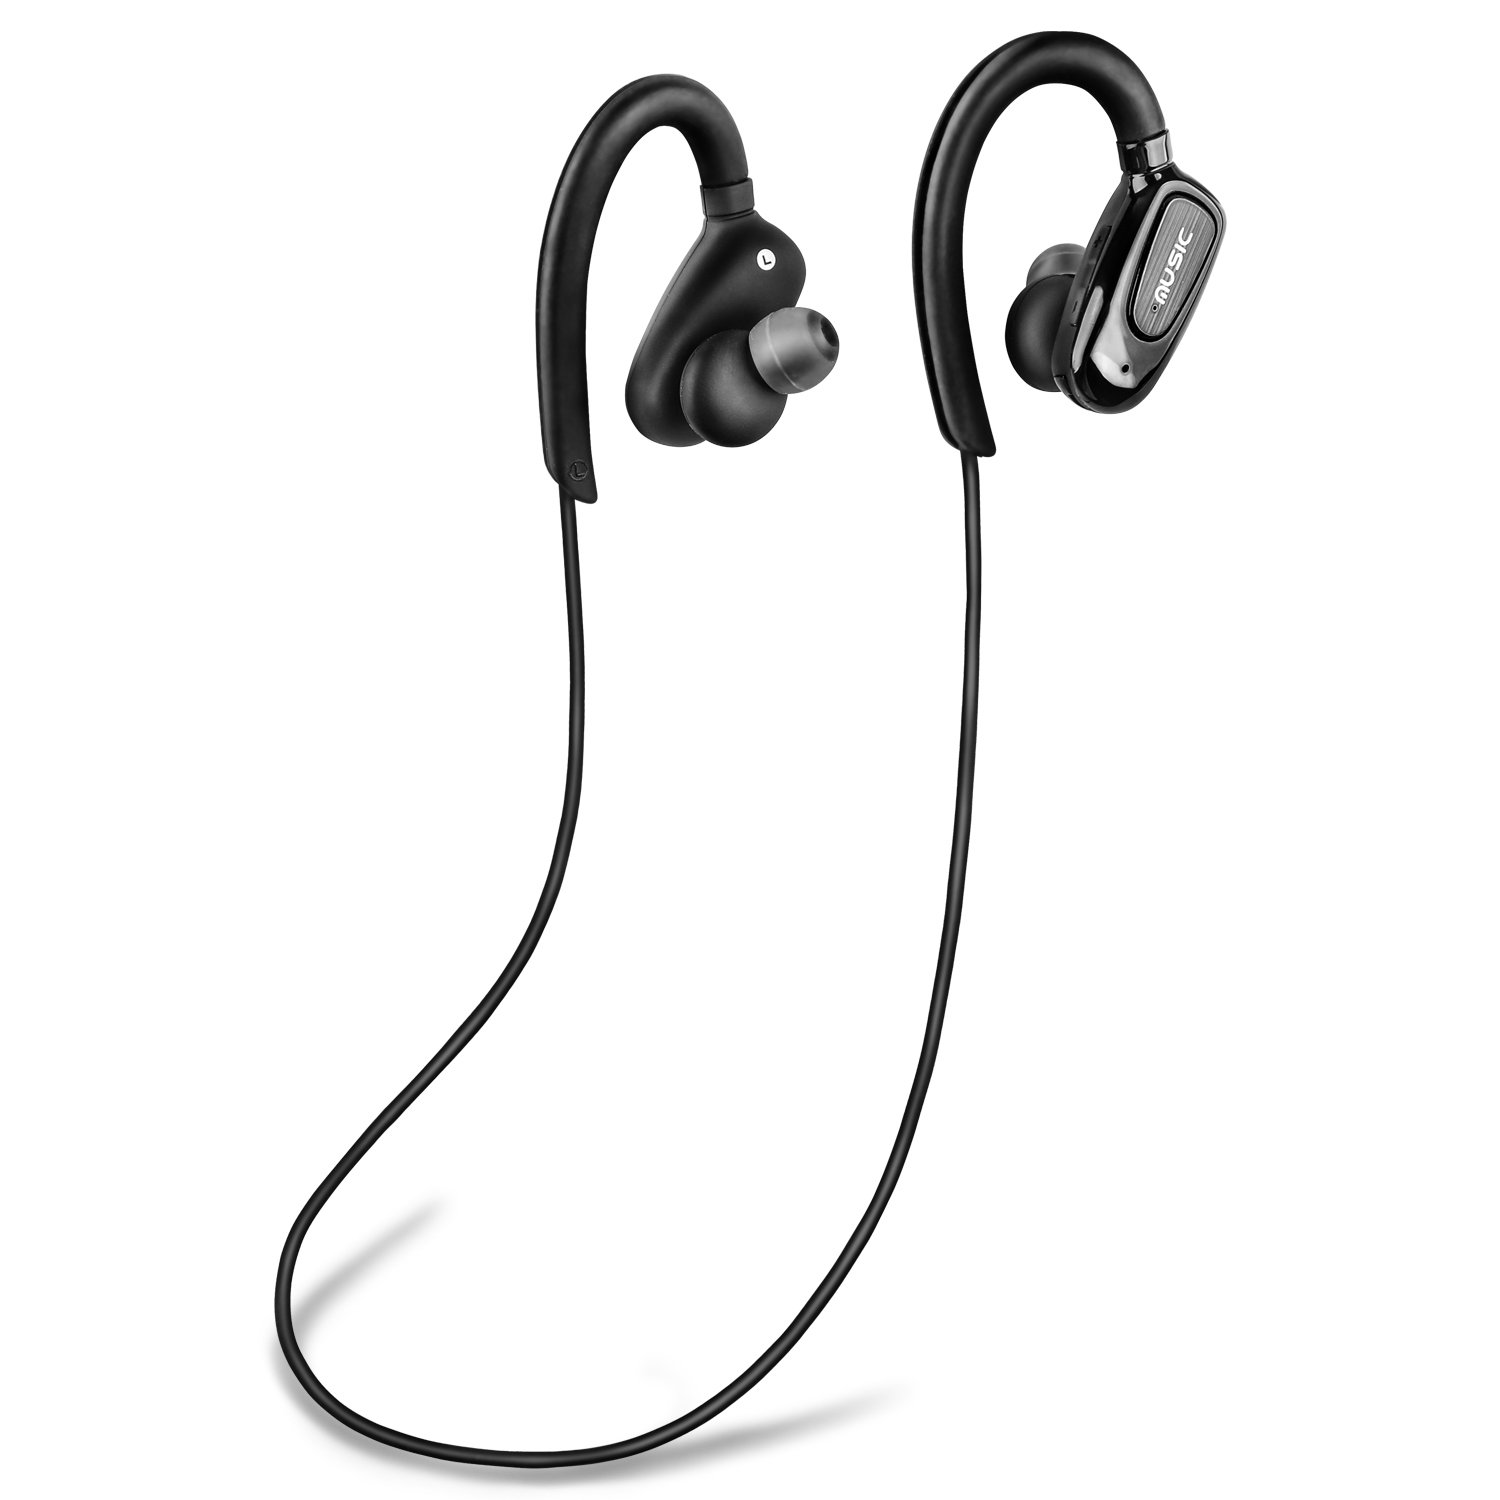 Grantek Bluetooth Headphones, Stereo Sound Wireless Earbuds, Sweatproof in-ear Earphone w Mic, Noise Cancelling Headset For Sports, Running, Gym, Workout Black